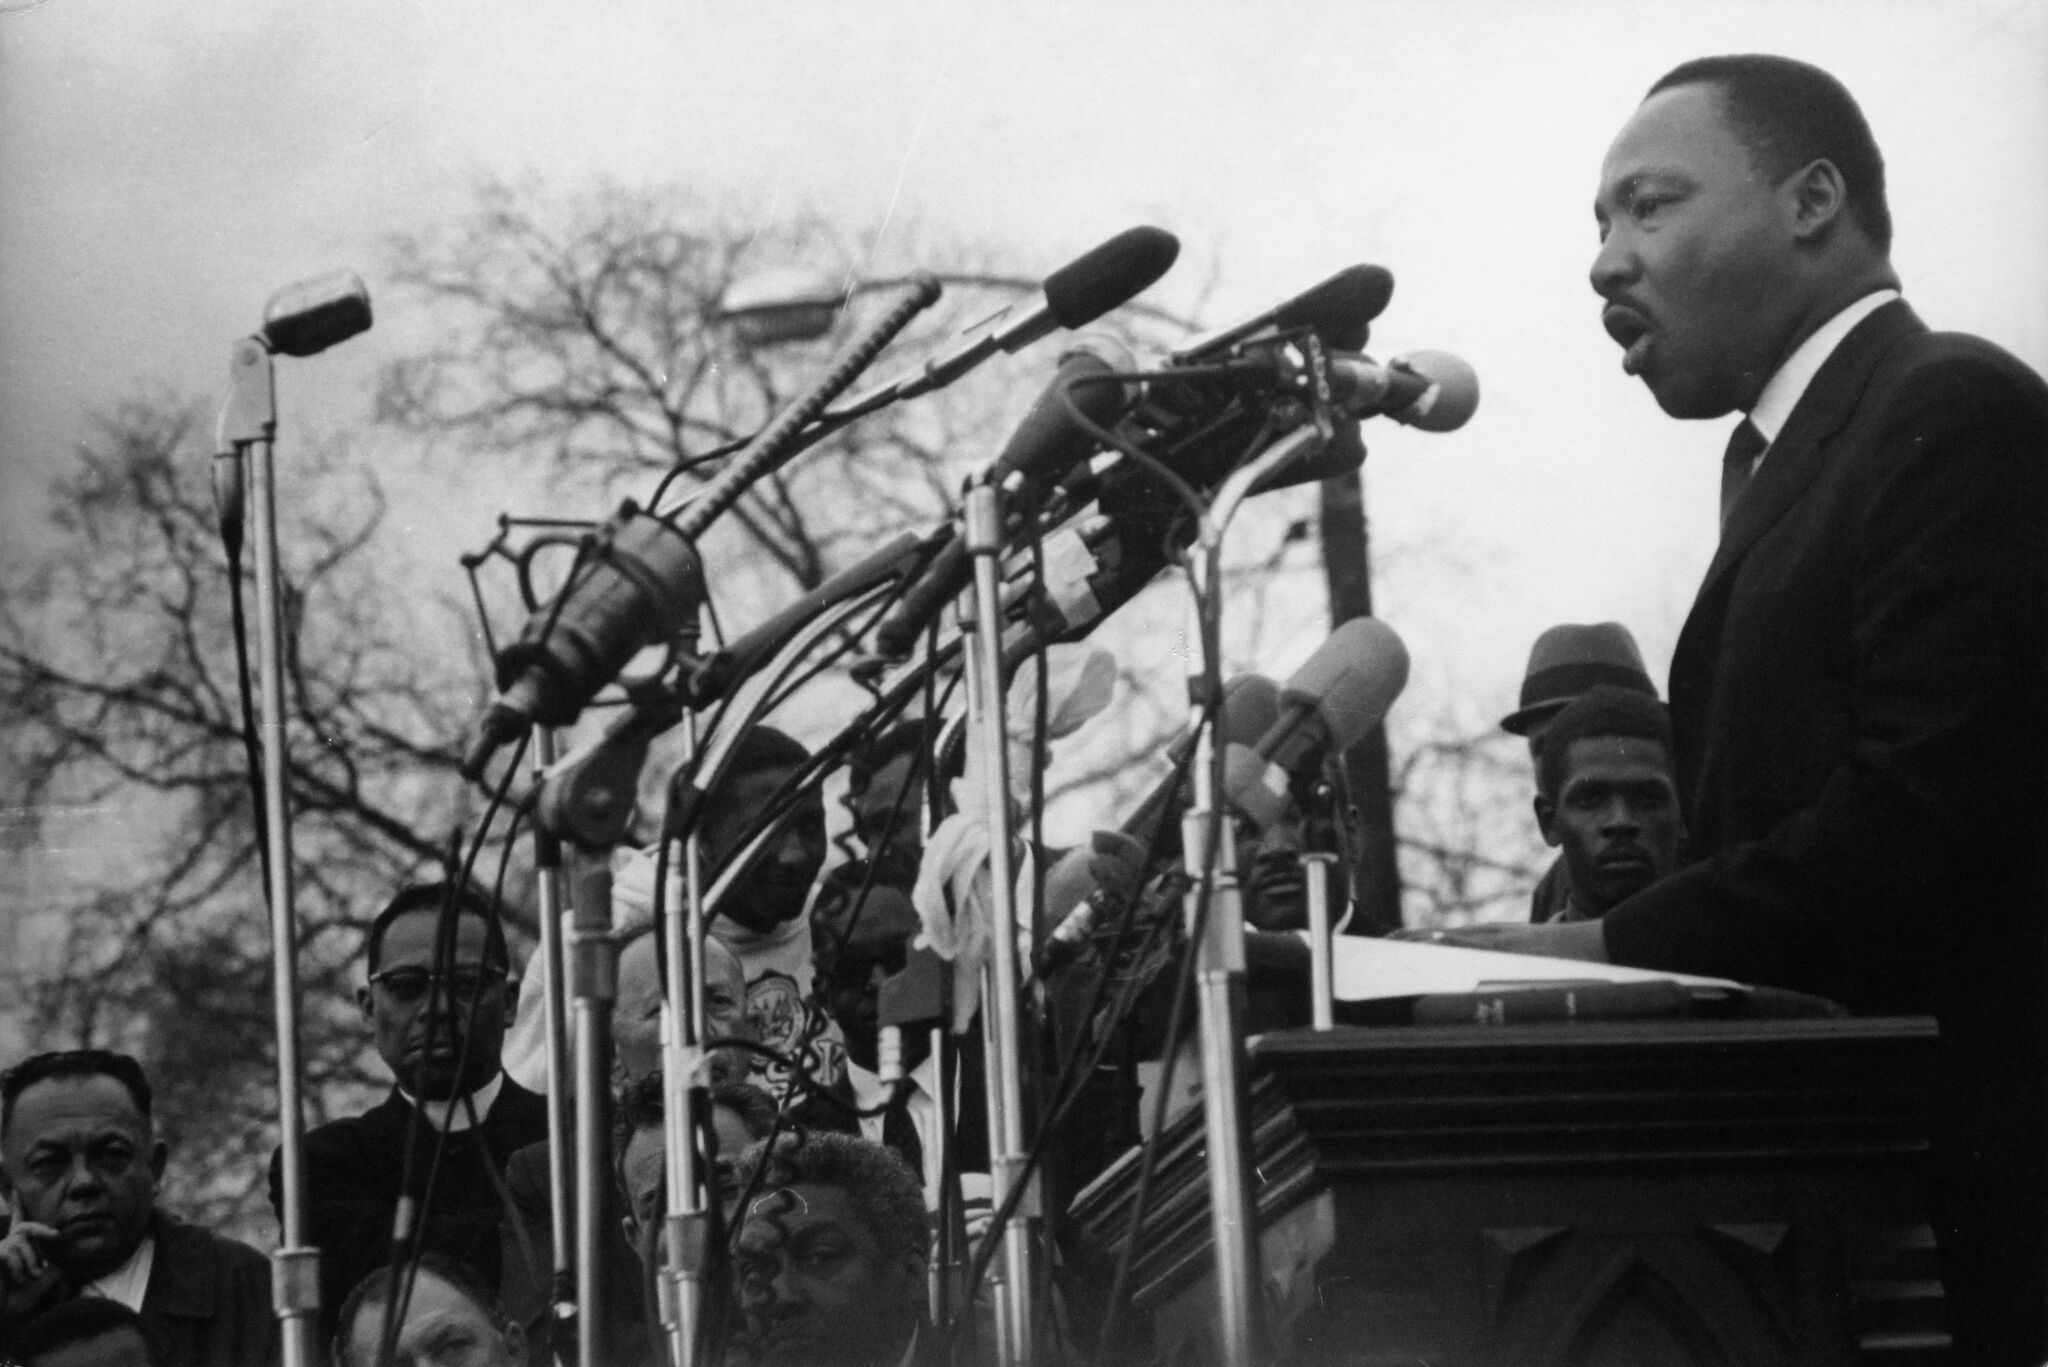 Hopper went to the 1965 Freedom March from Selma, Ala., to Montgomery and photographed Martin Luther King Jr.